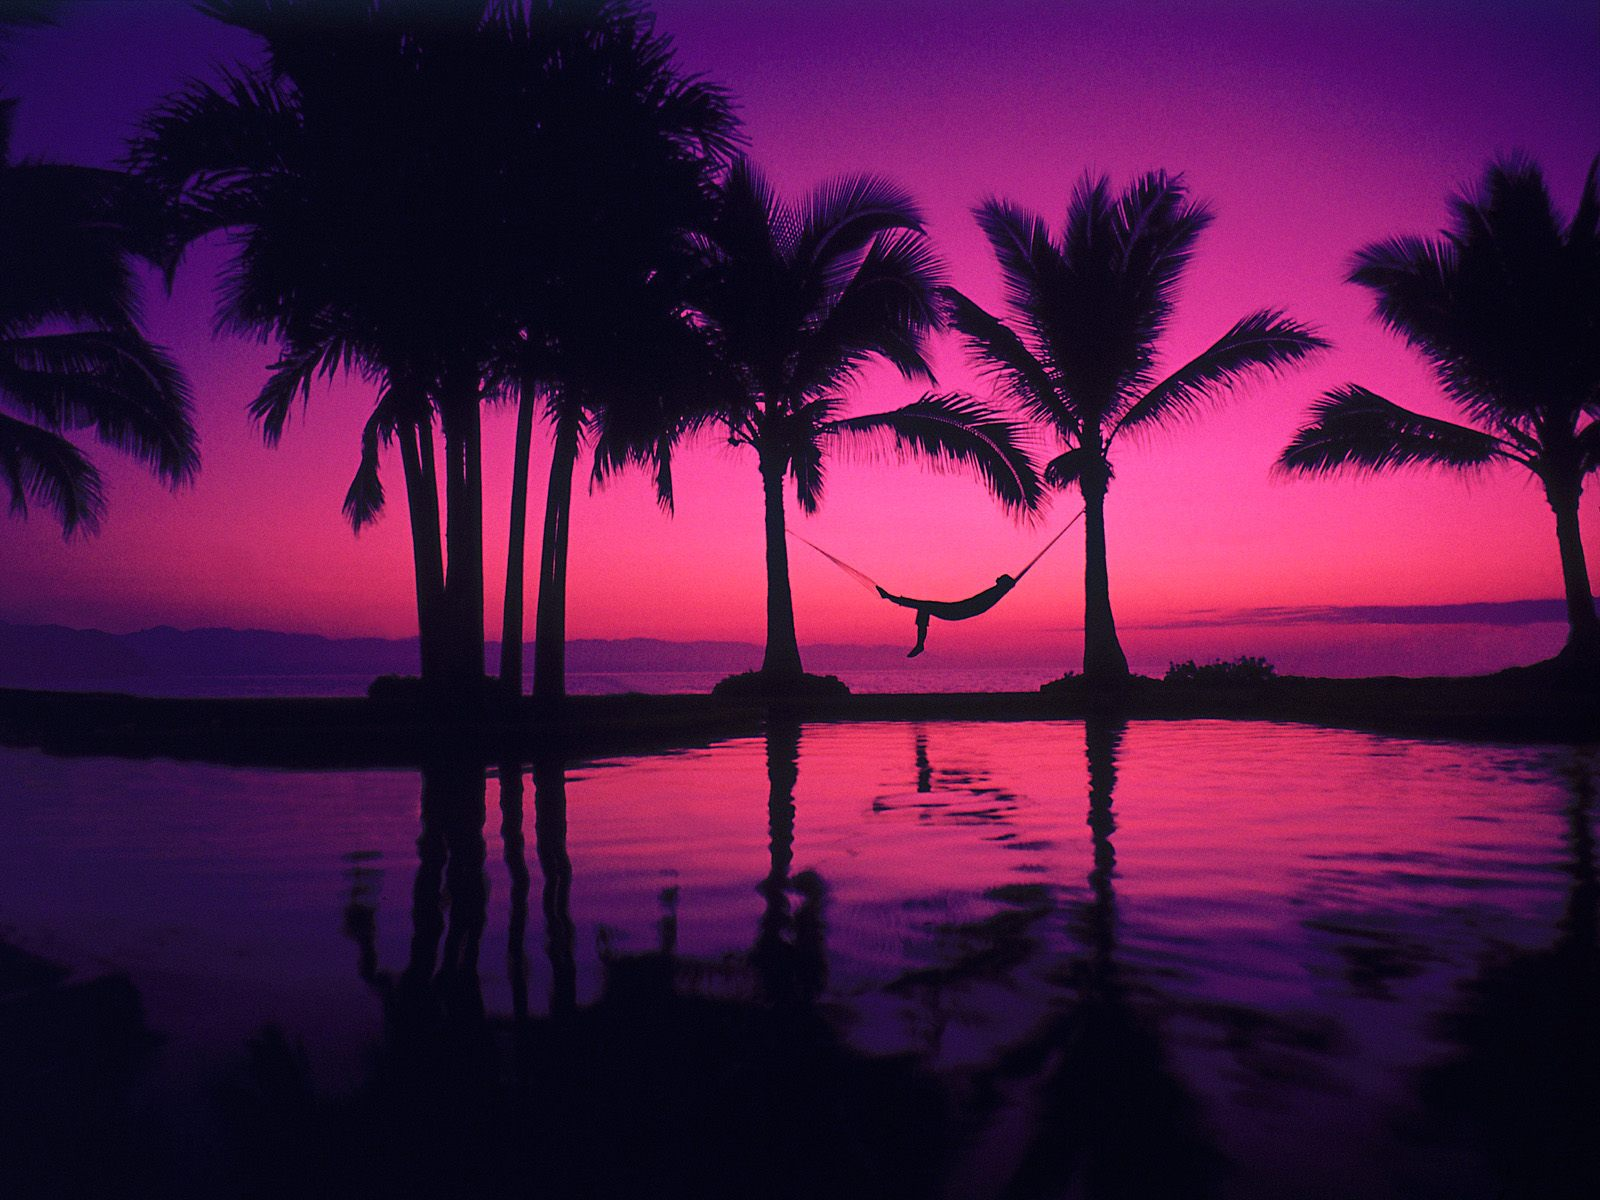 http://3.bp.blogspot.com/-DD1BDOf56gI/TtuqHohNDLI/AAAAAAAAA9k/xE6wUq0EeyU/s1600/6478_beach_hd_wallpapers_purple_sunset_sea.jpg